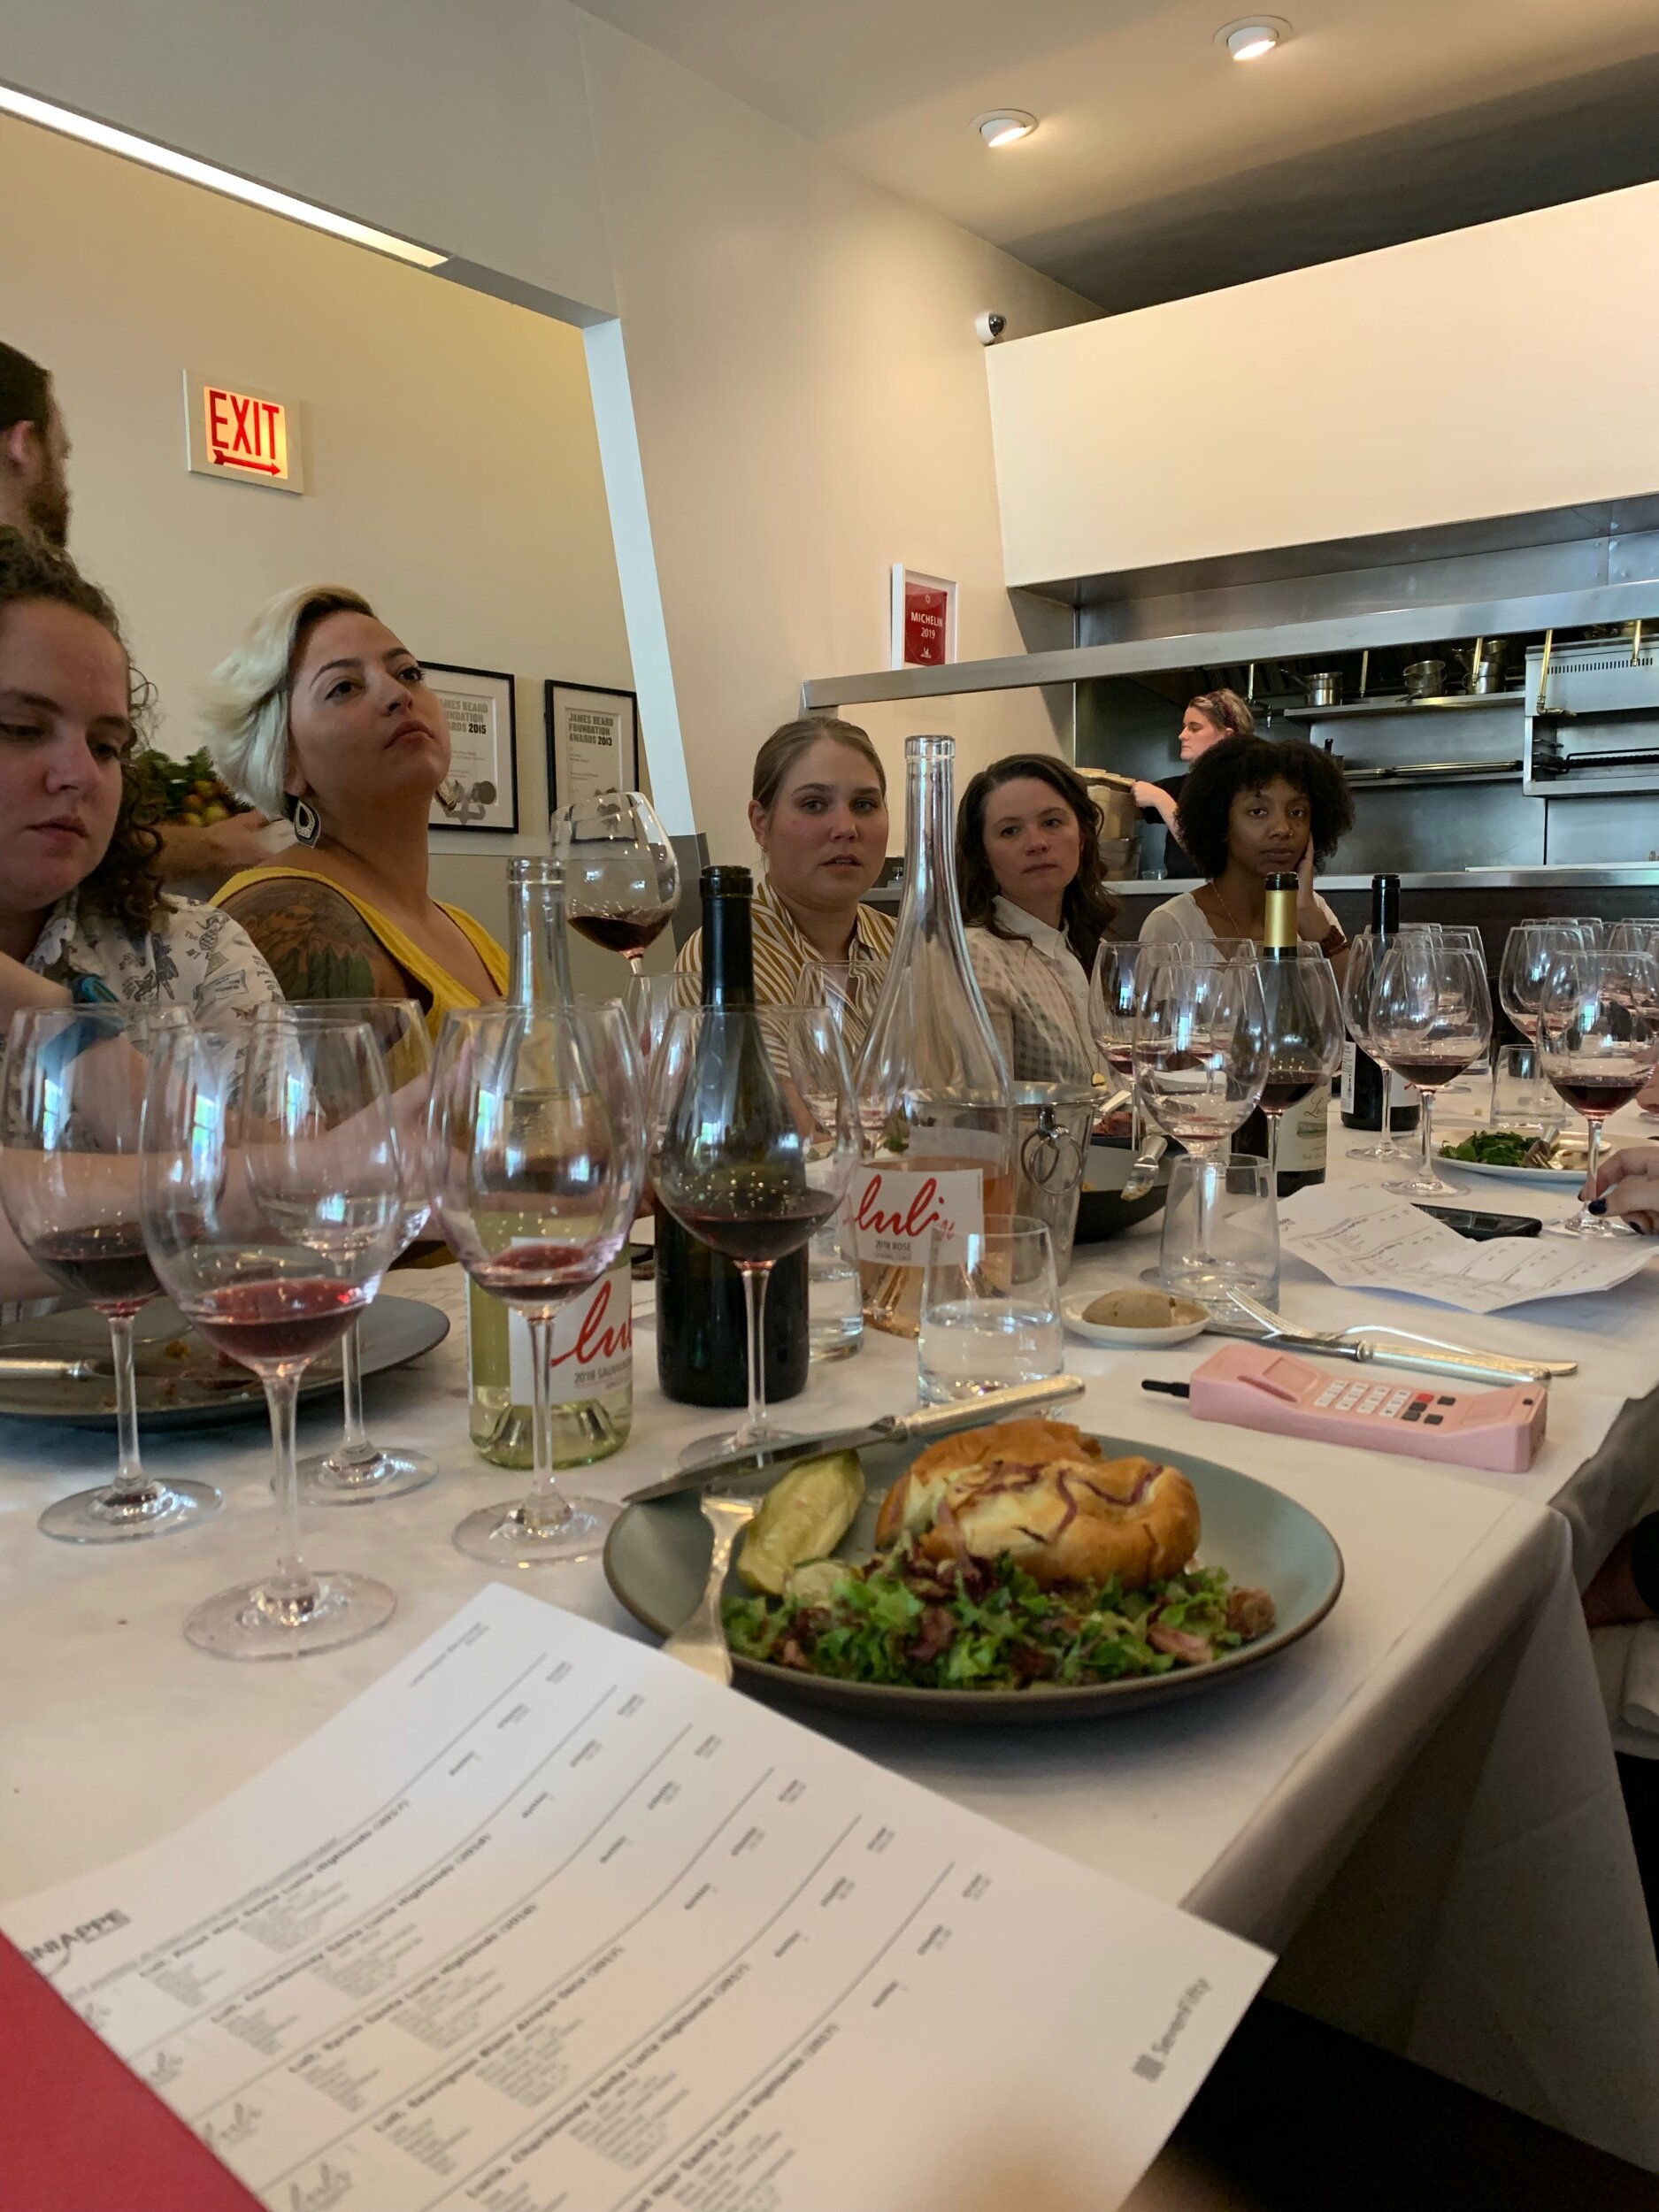 Nice to see so many female wine pros at one table!